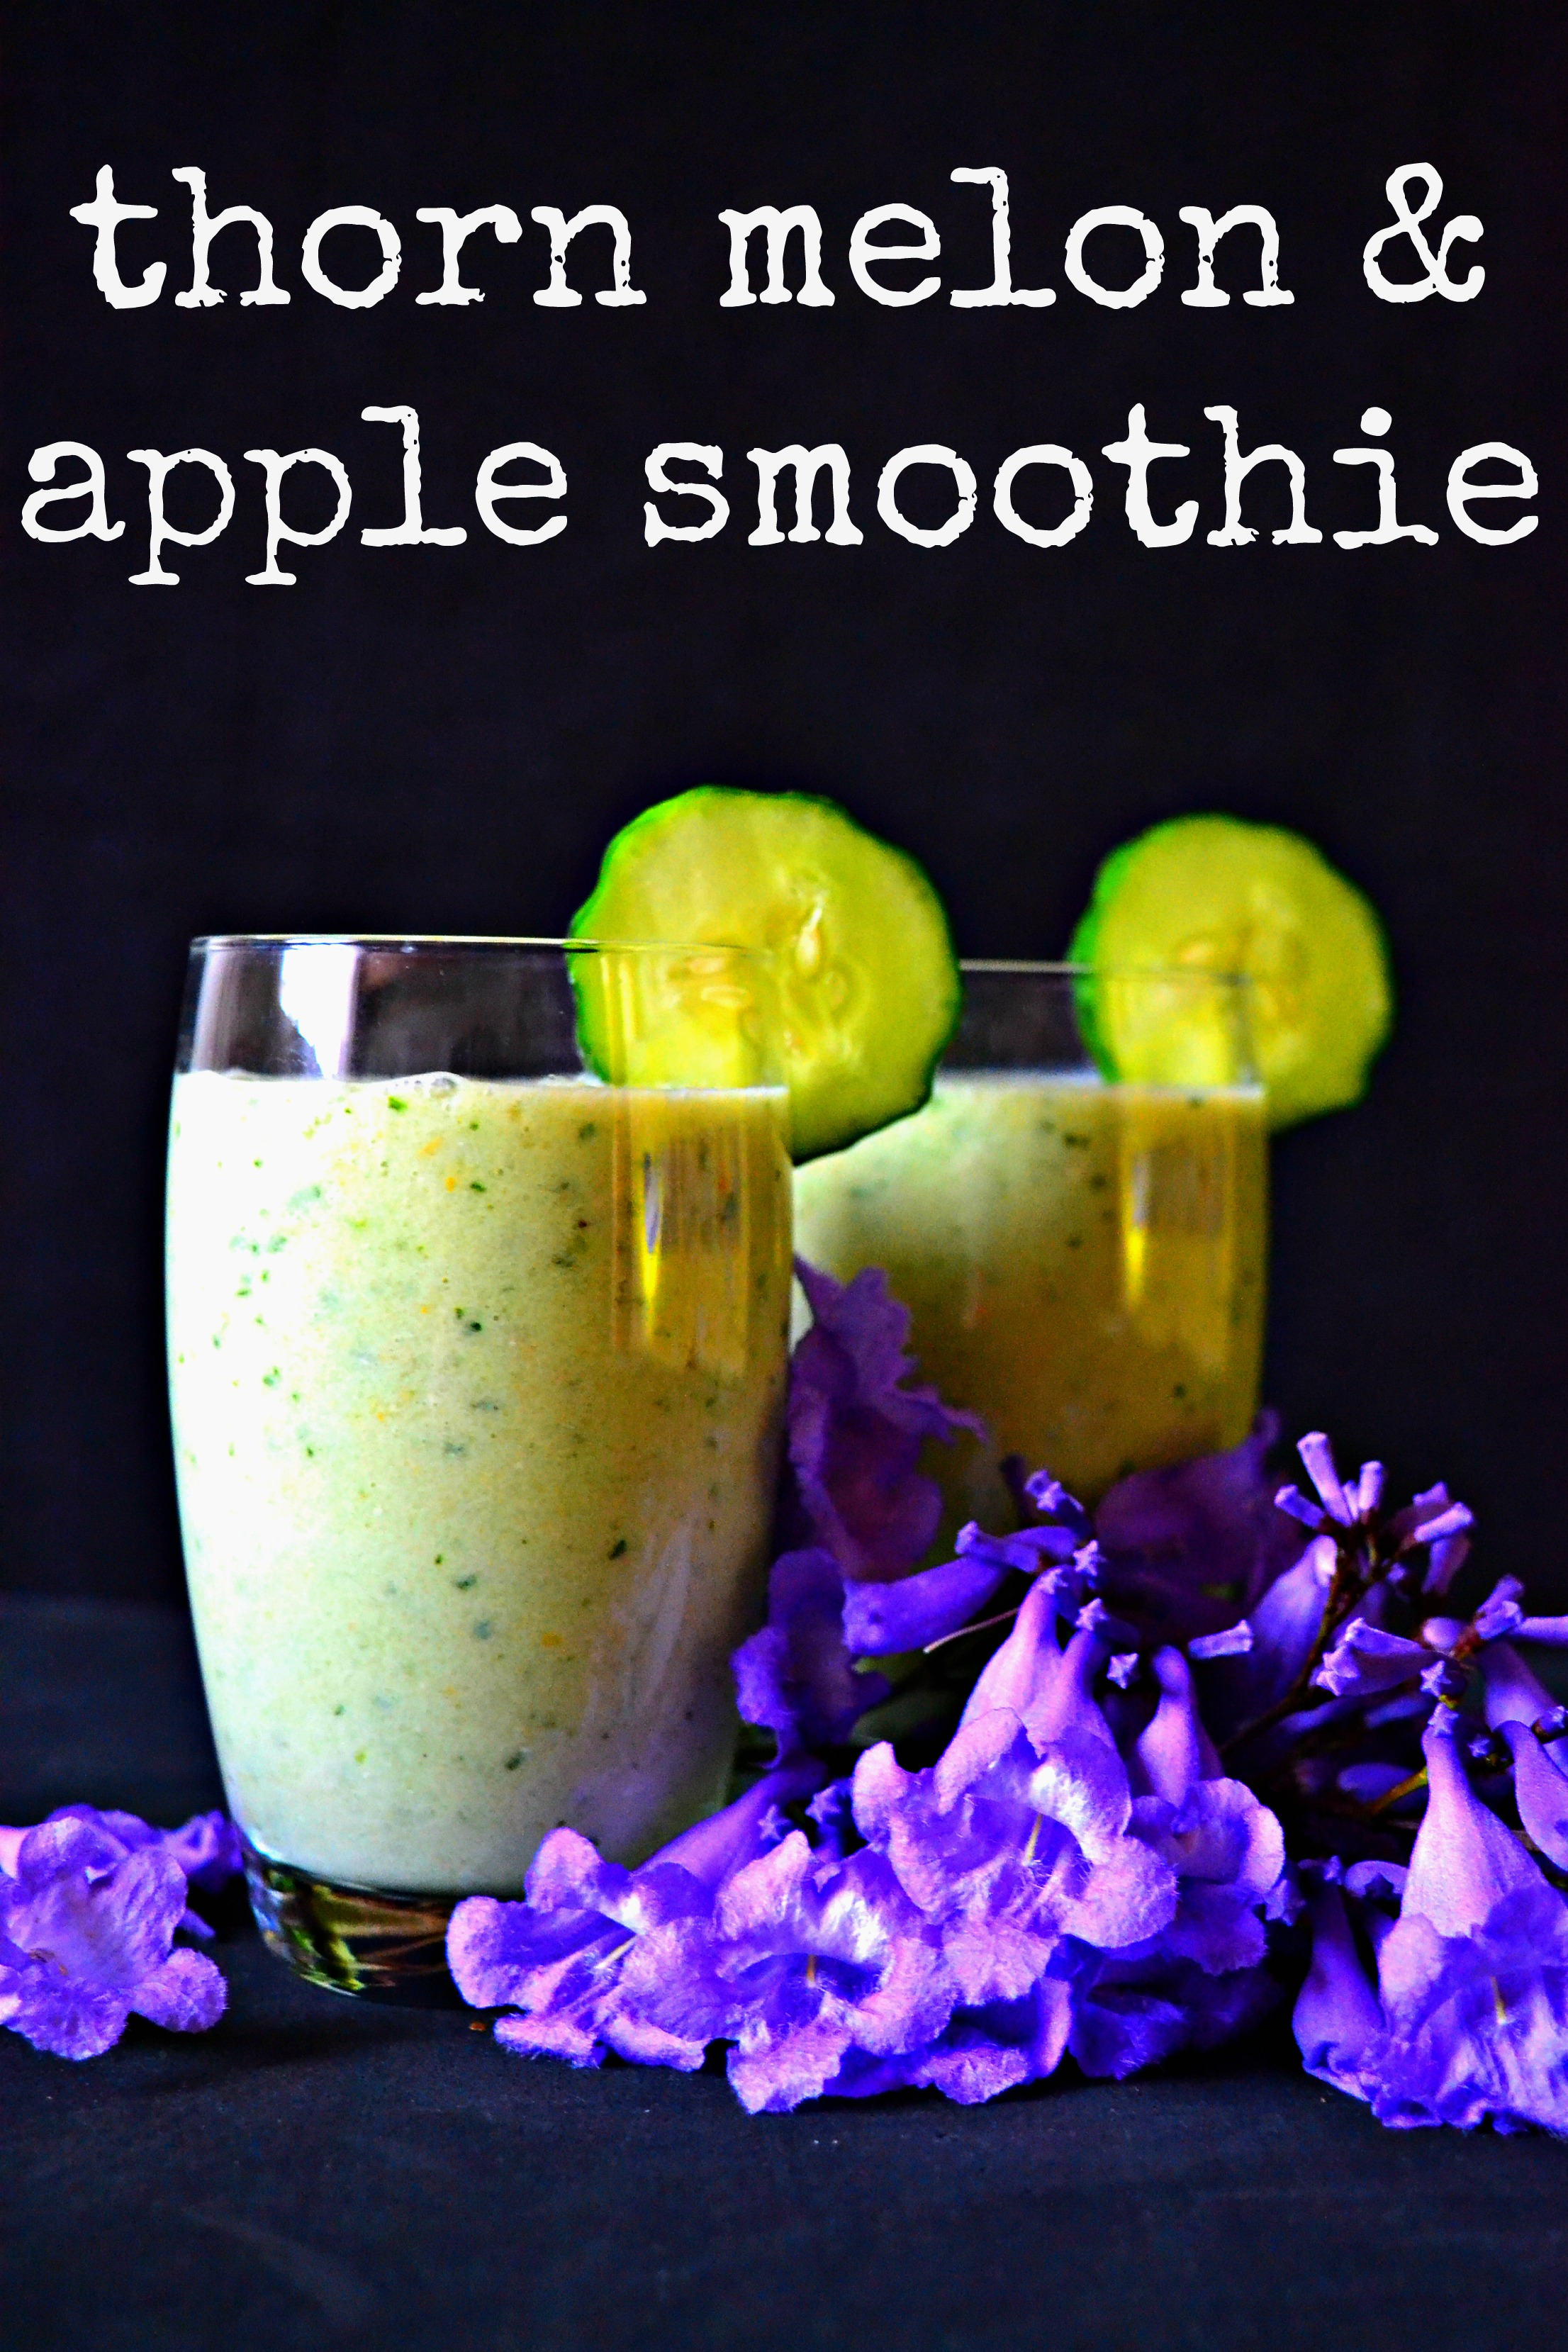 thorn-melon-and-apple-smoothie_how-to-make-a-smoothie_kaluhiskitchen-com_healthy-smoothies_green-smoothies_kaluhiskitchen-com